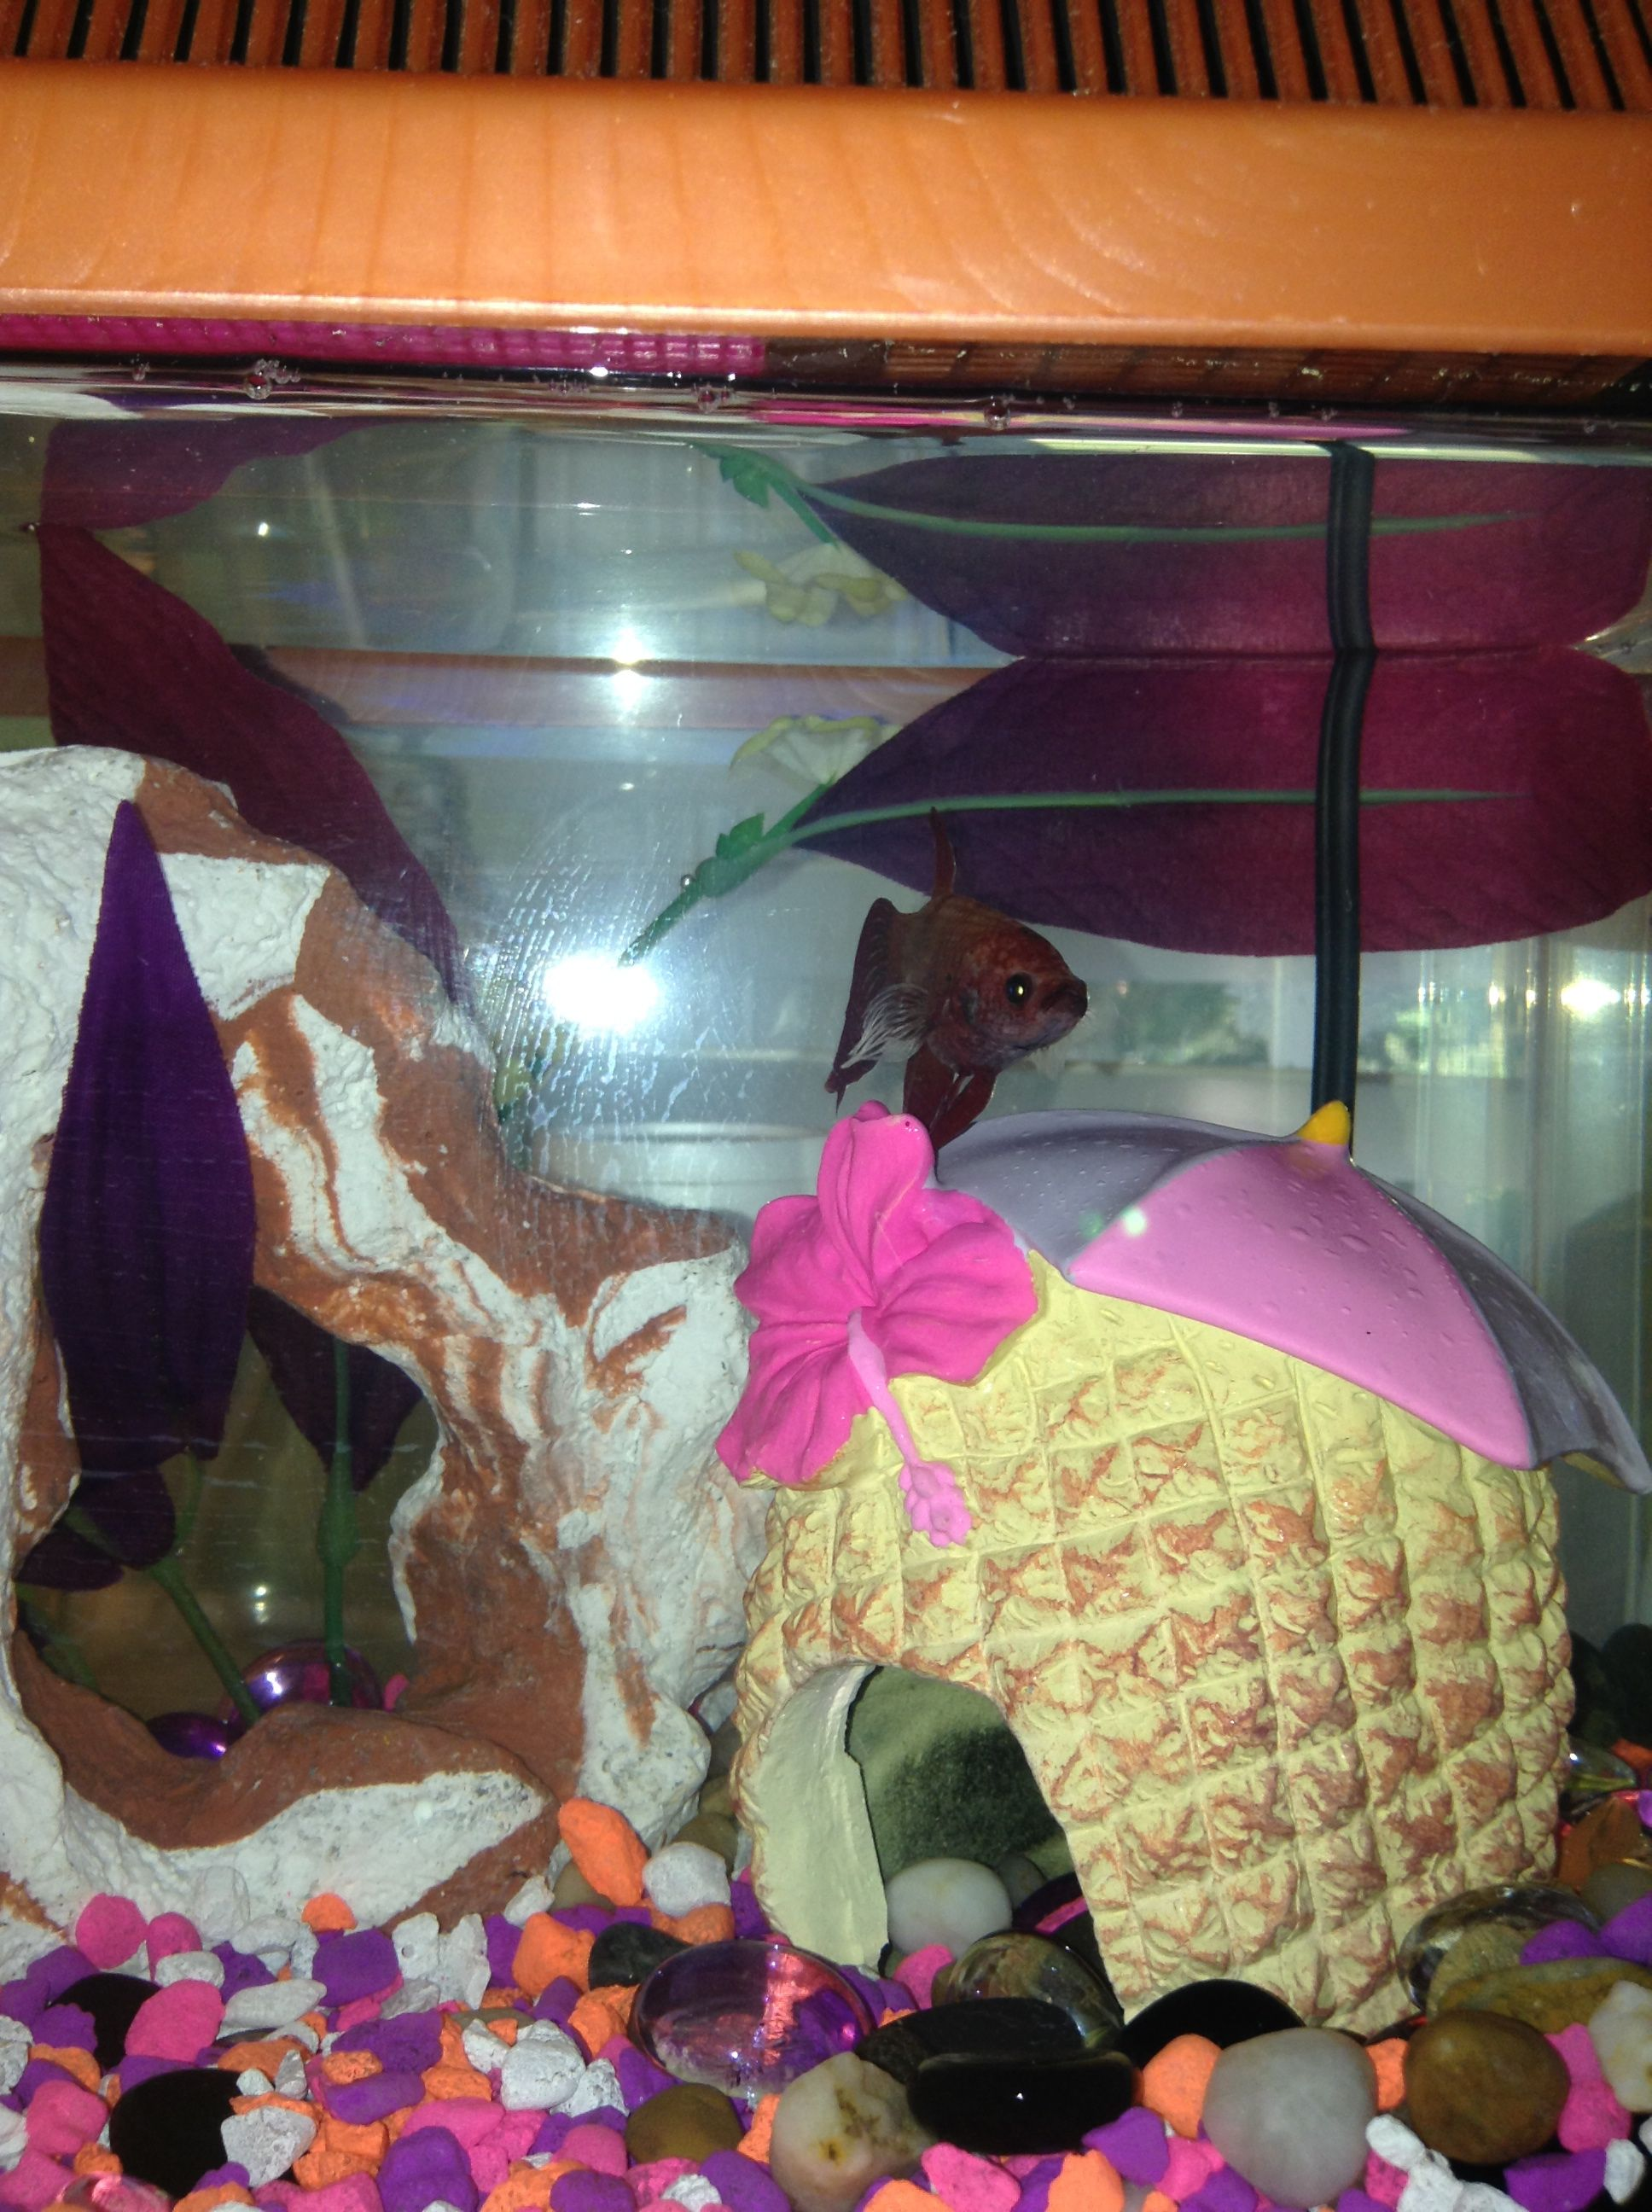 Wanda, With New Decorations